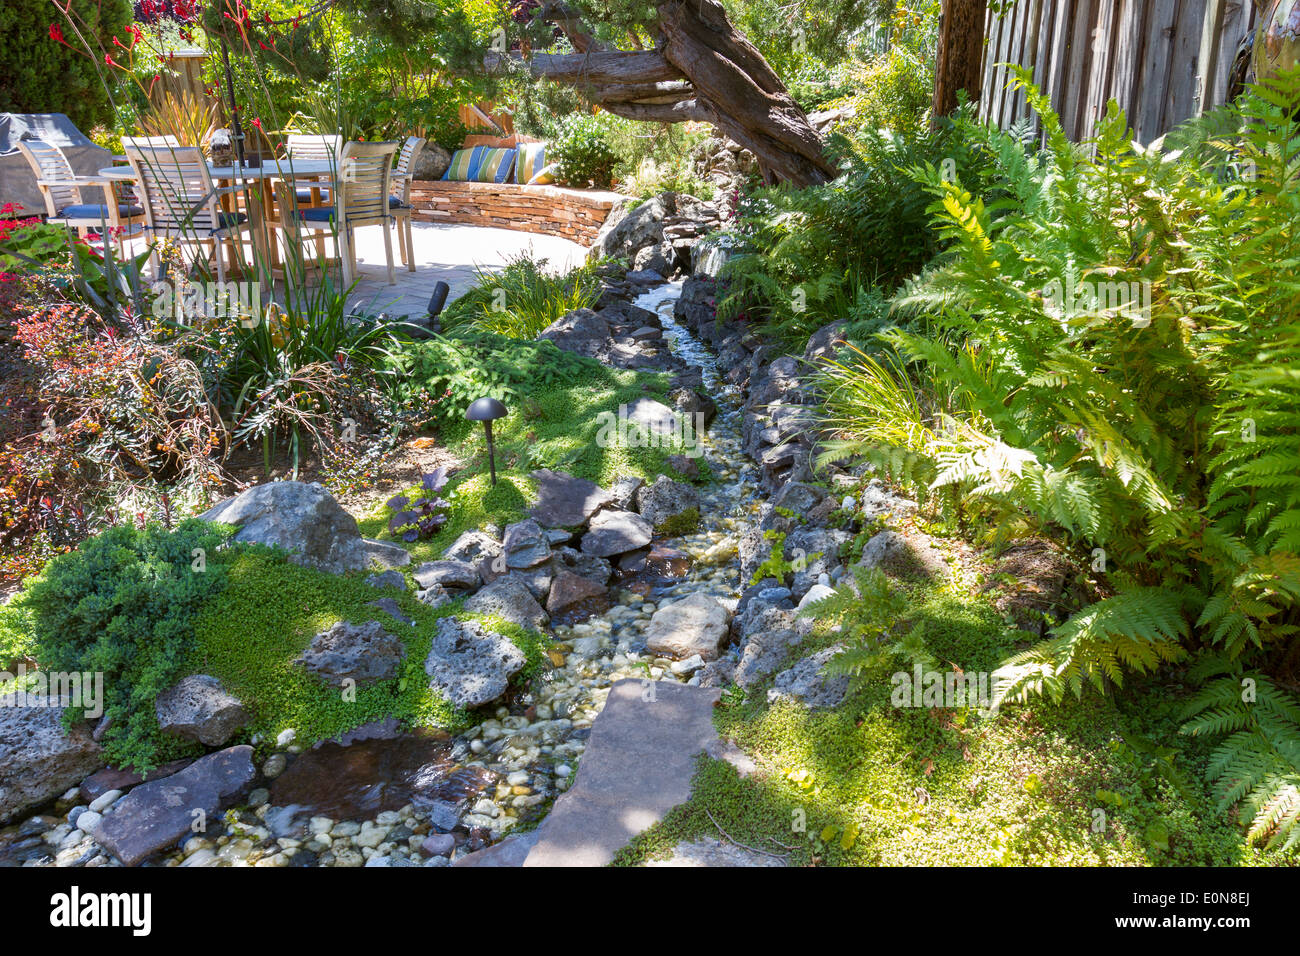 Water Feature Stream With Lush Foliage In A Beautiful Landscaped